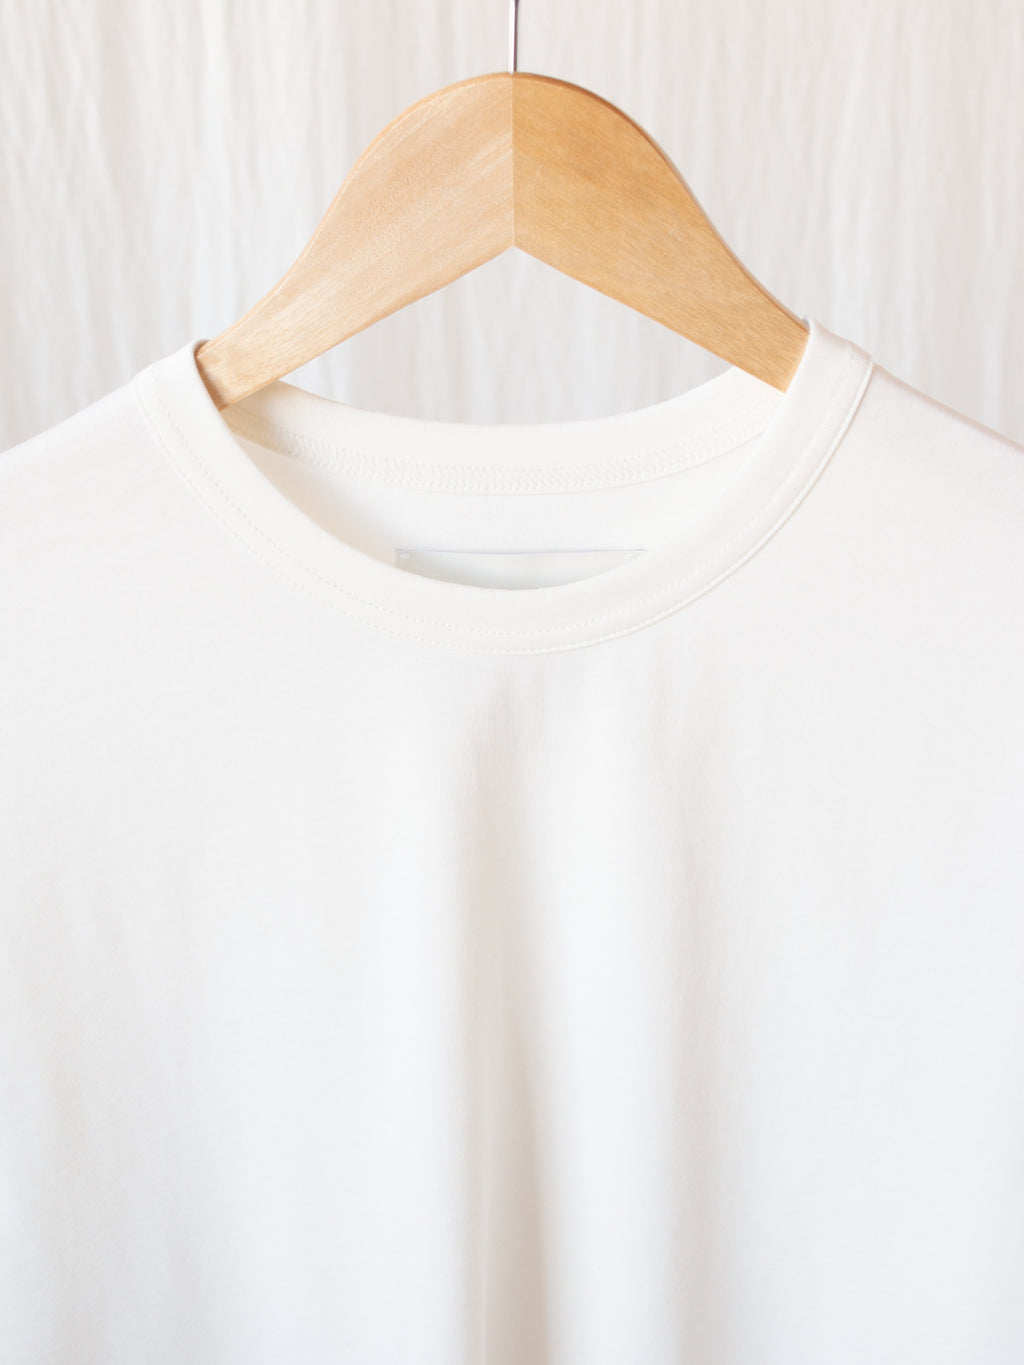 Namu Shop - Studio Nicholson Lee Mercerized Cotton Tee - White